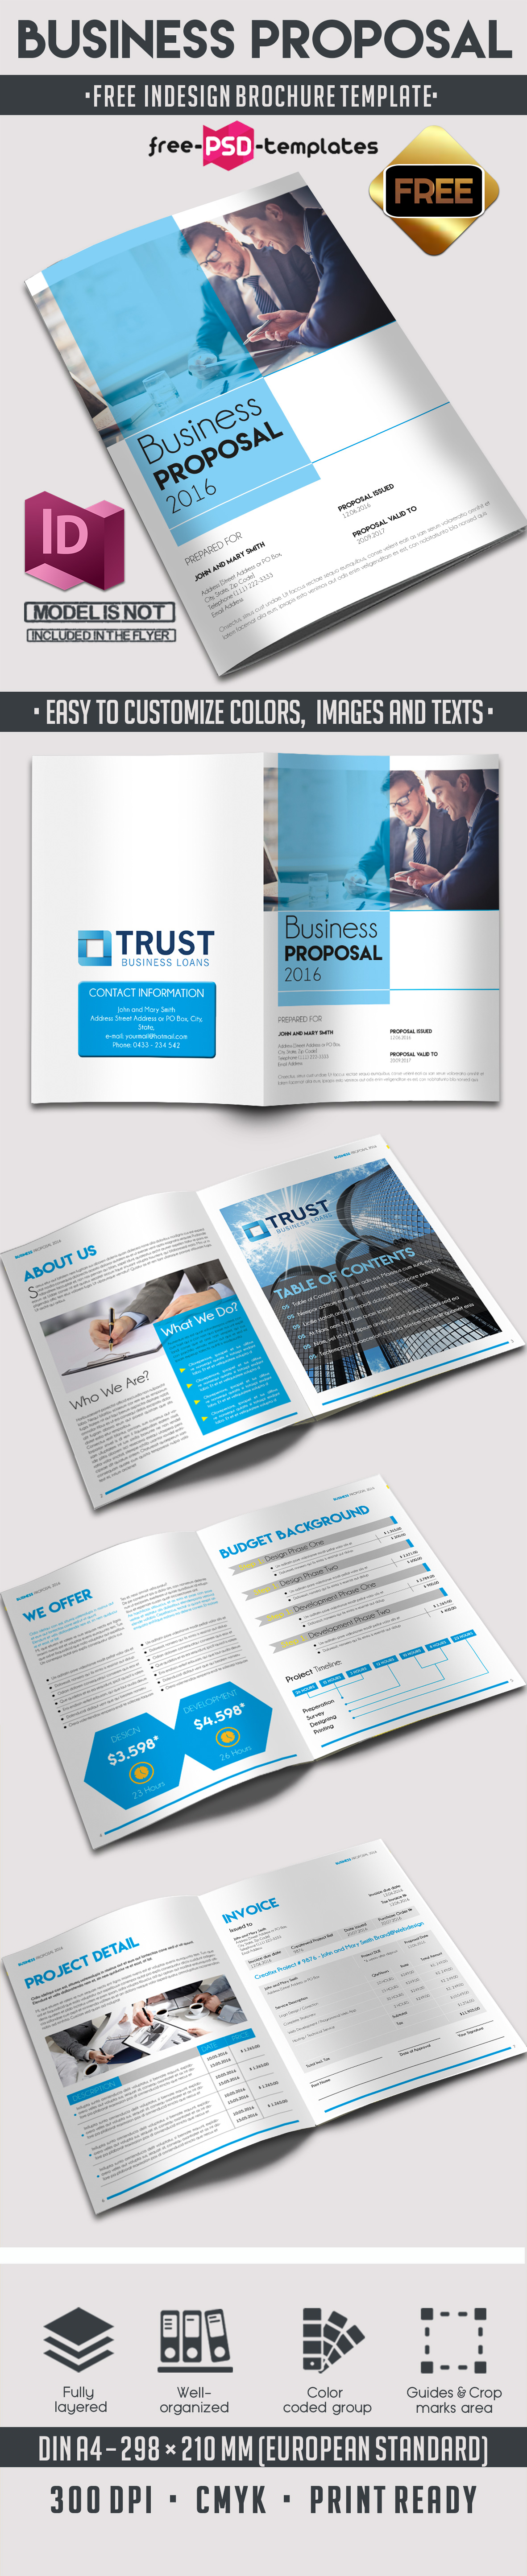 brochure design templates free psd - free business proposal brochure 8 pages a4 free psd